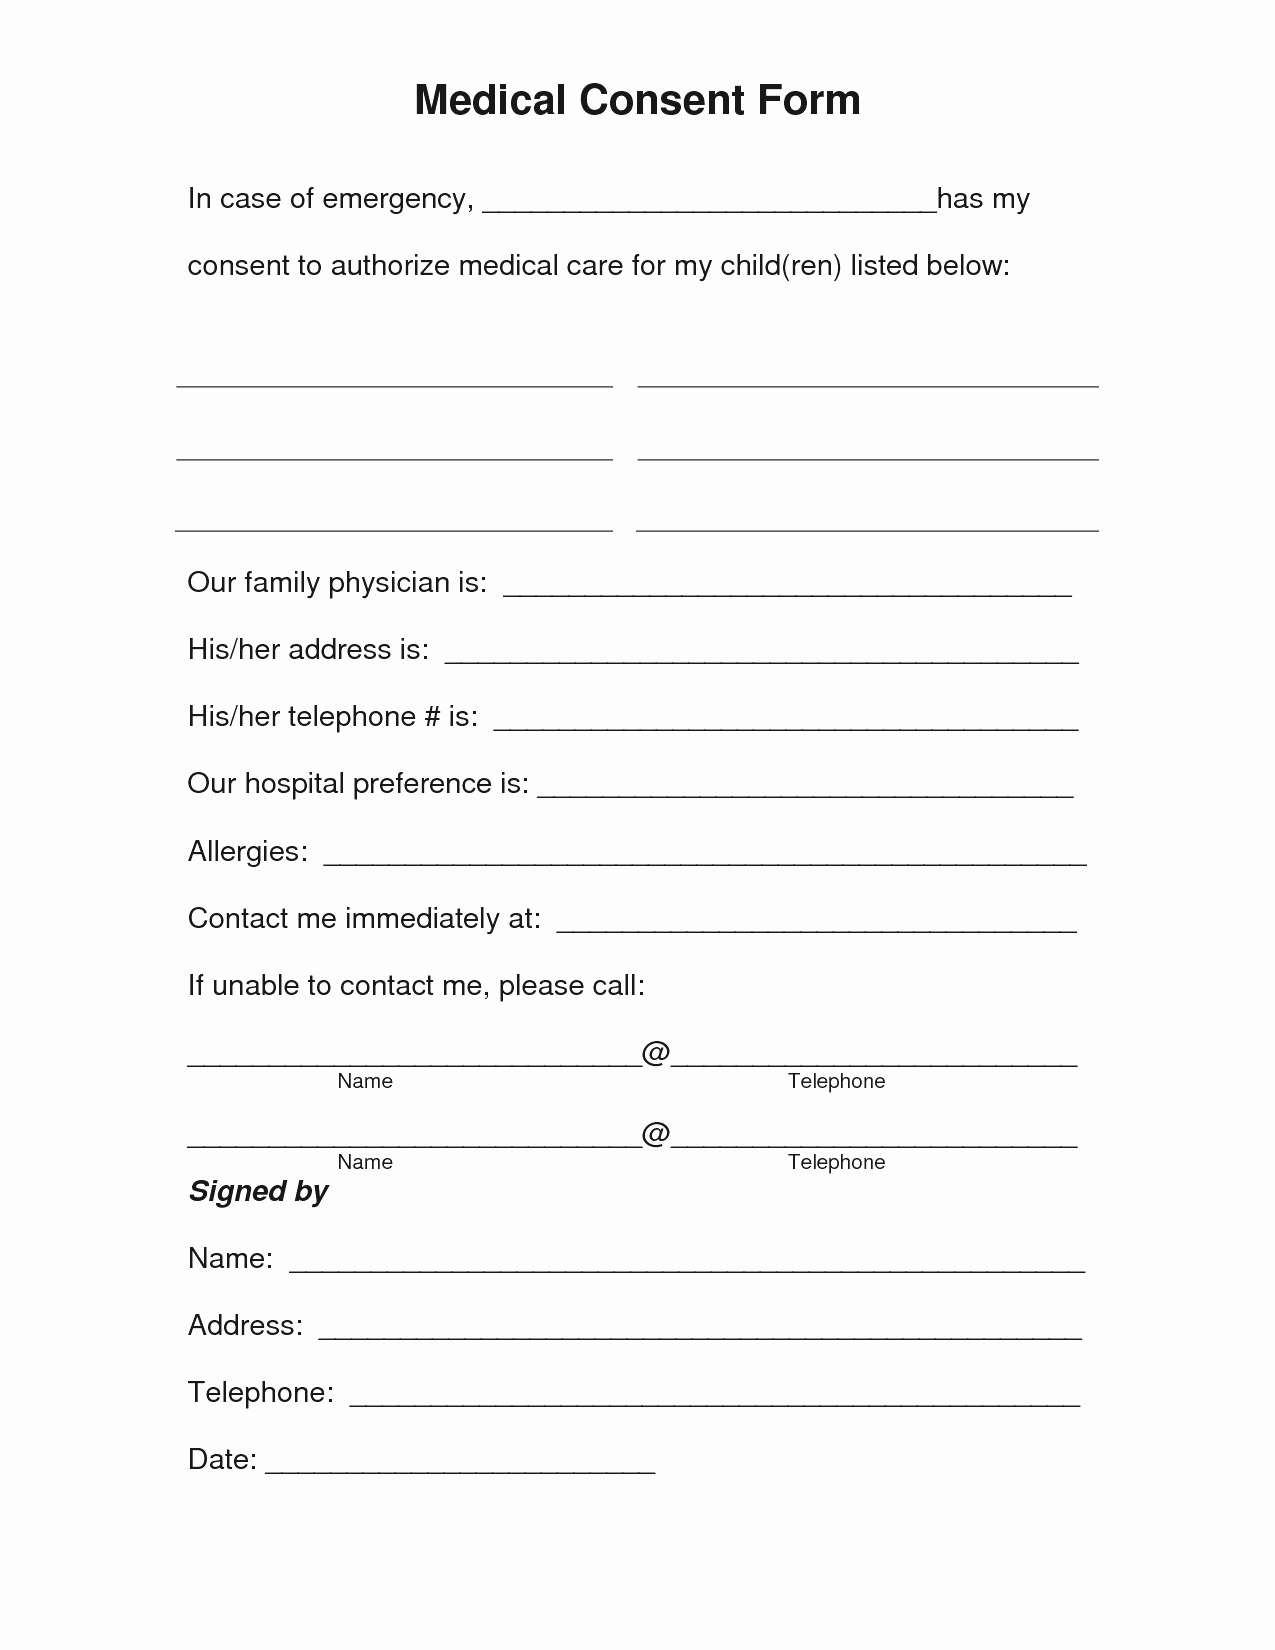 Medical Face Sheet Template Luxury Blank Medical forms Mughals